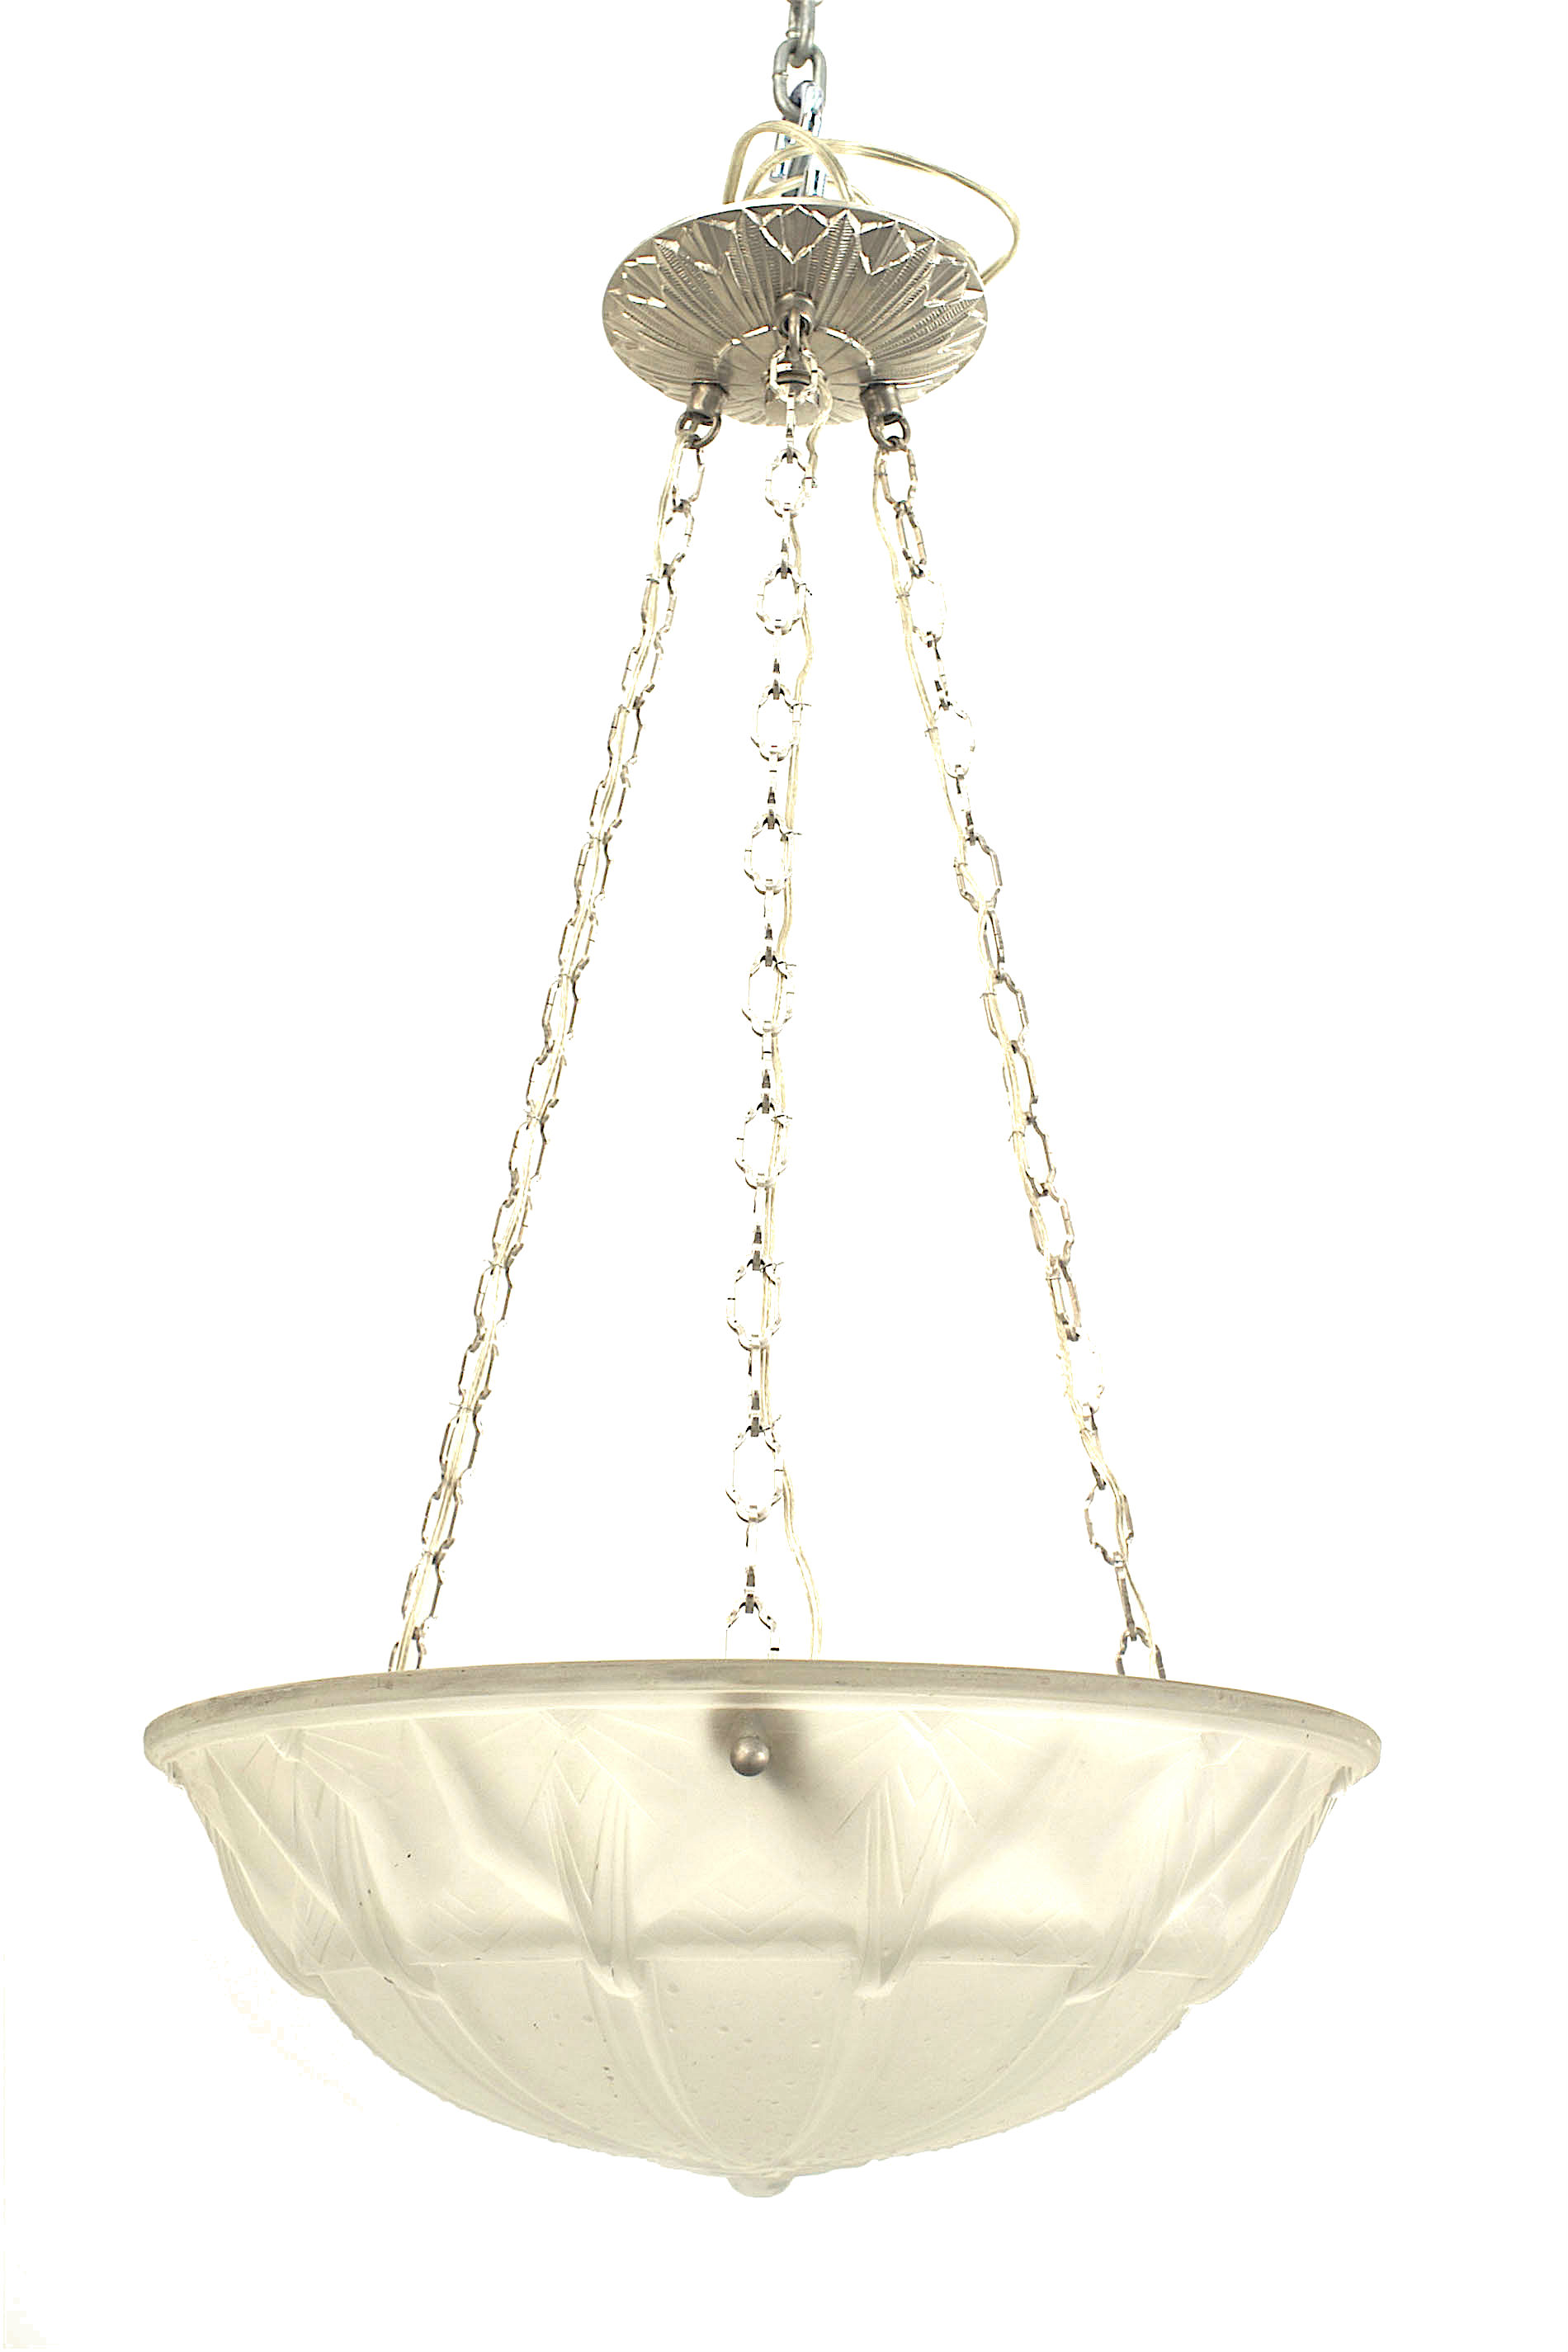 French art deco circa 1925 round pendant form frosted glass bowl 3 chains french art deco circa 1925 round pendant form frosted glass bowl form chandeliers with a fluted design and star finial bottom suspended by aloadofball Images